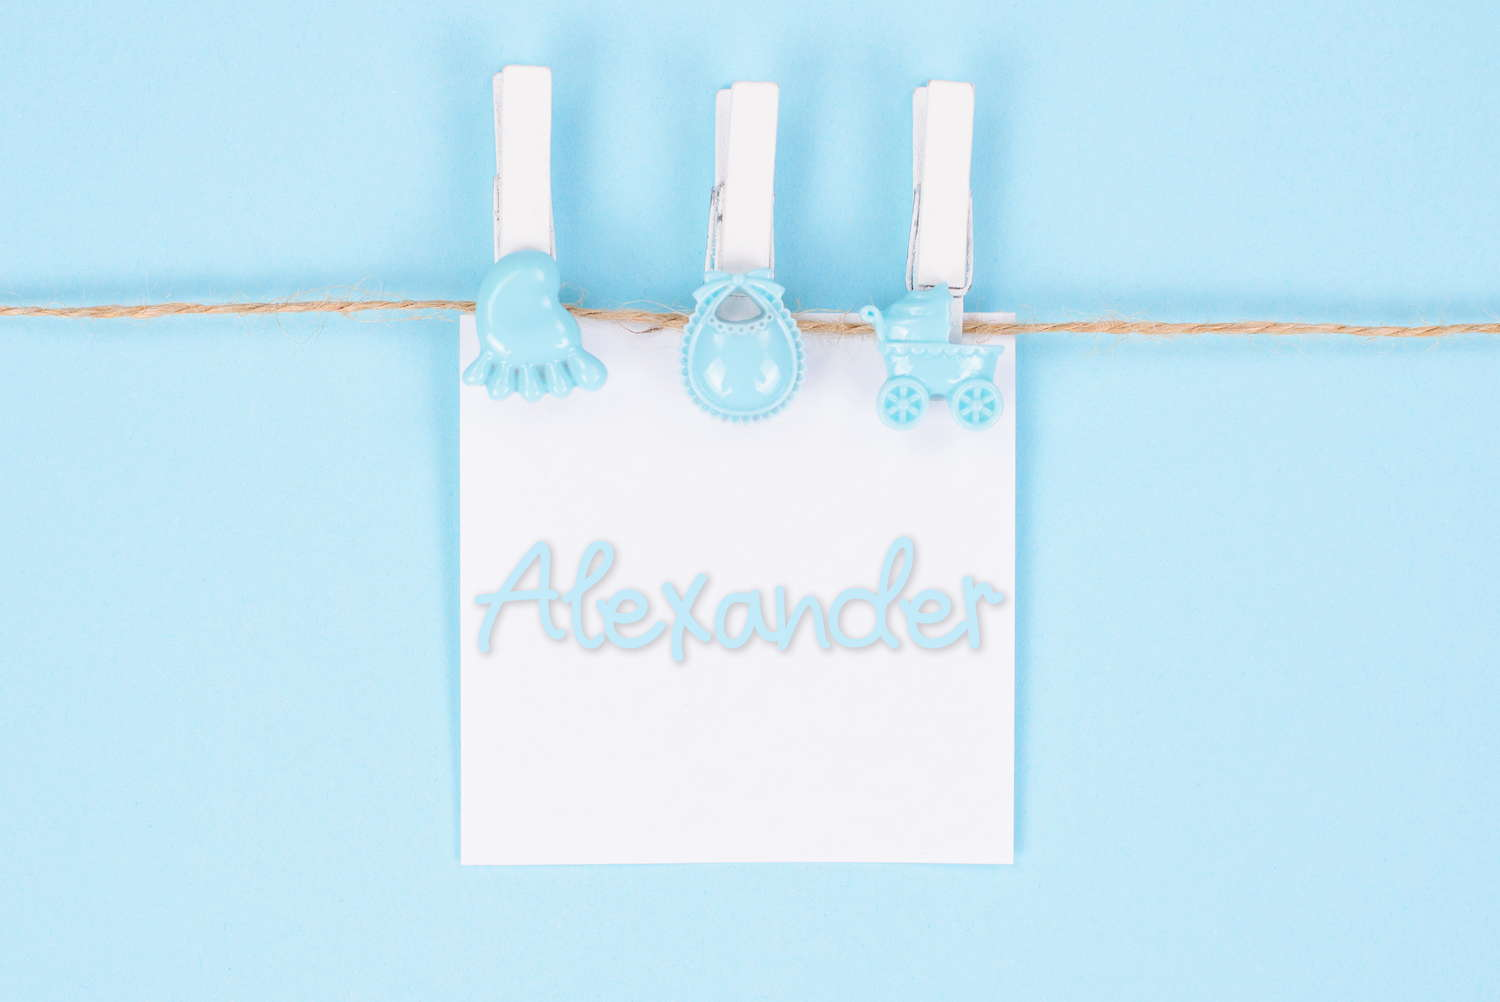 Alexander Baby Name